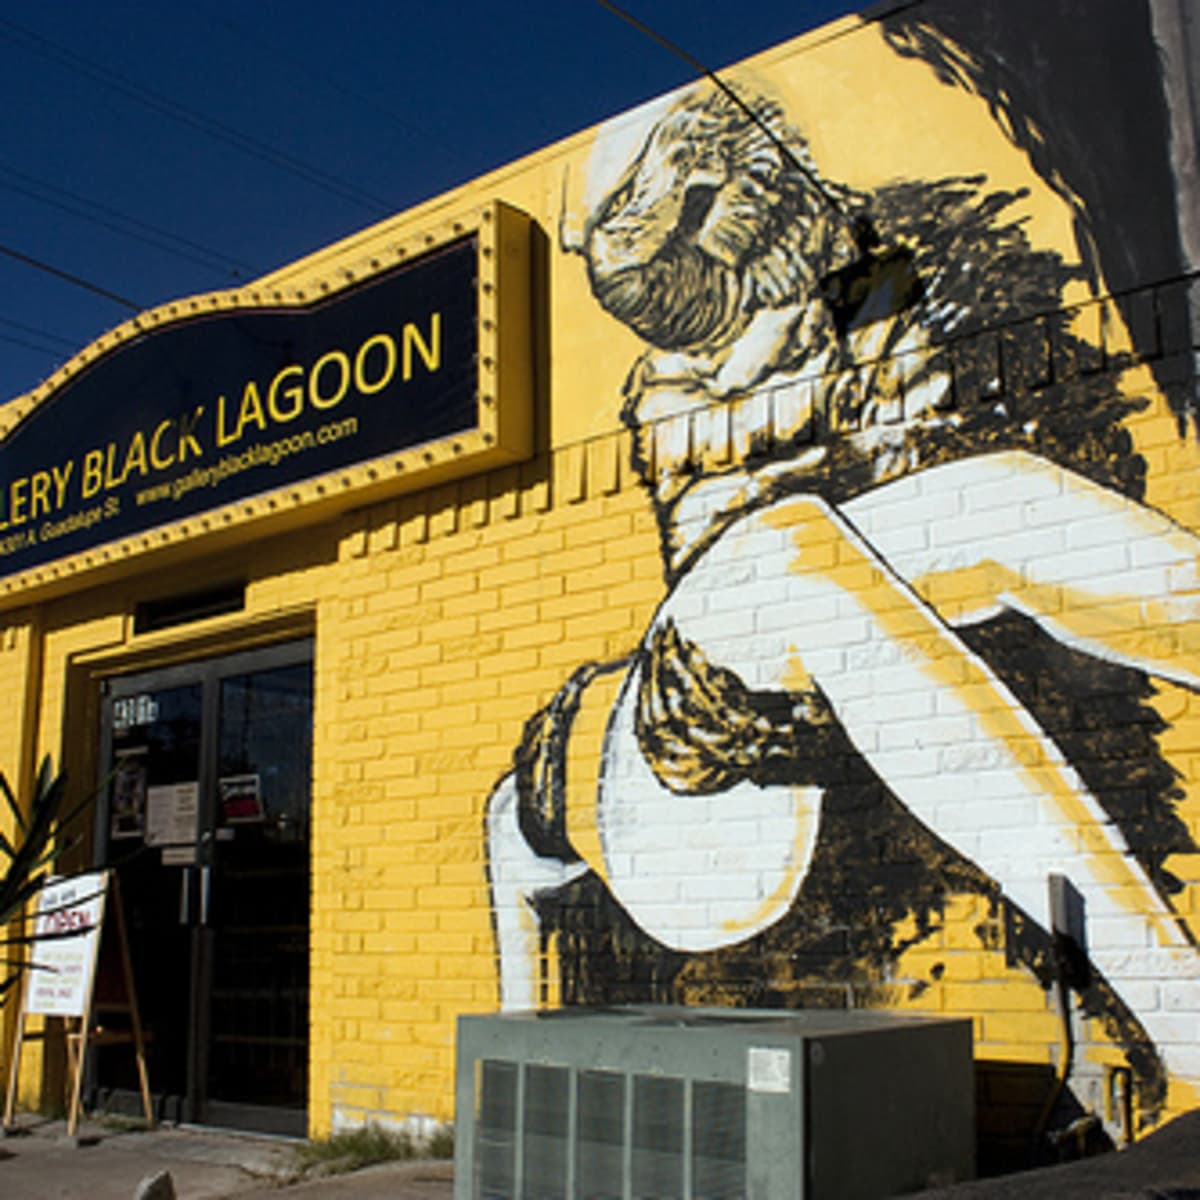 Austin photo: Places_Arts_Gallery_Black_Lagoon_Exterior